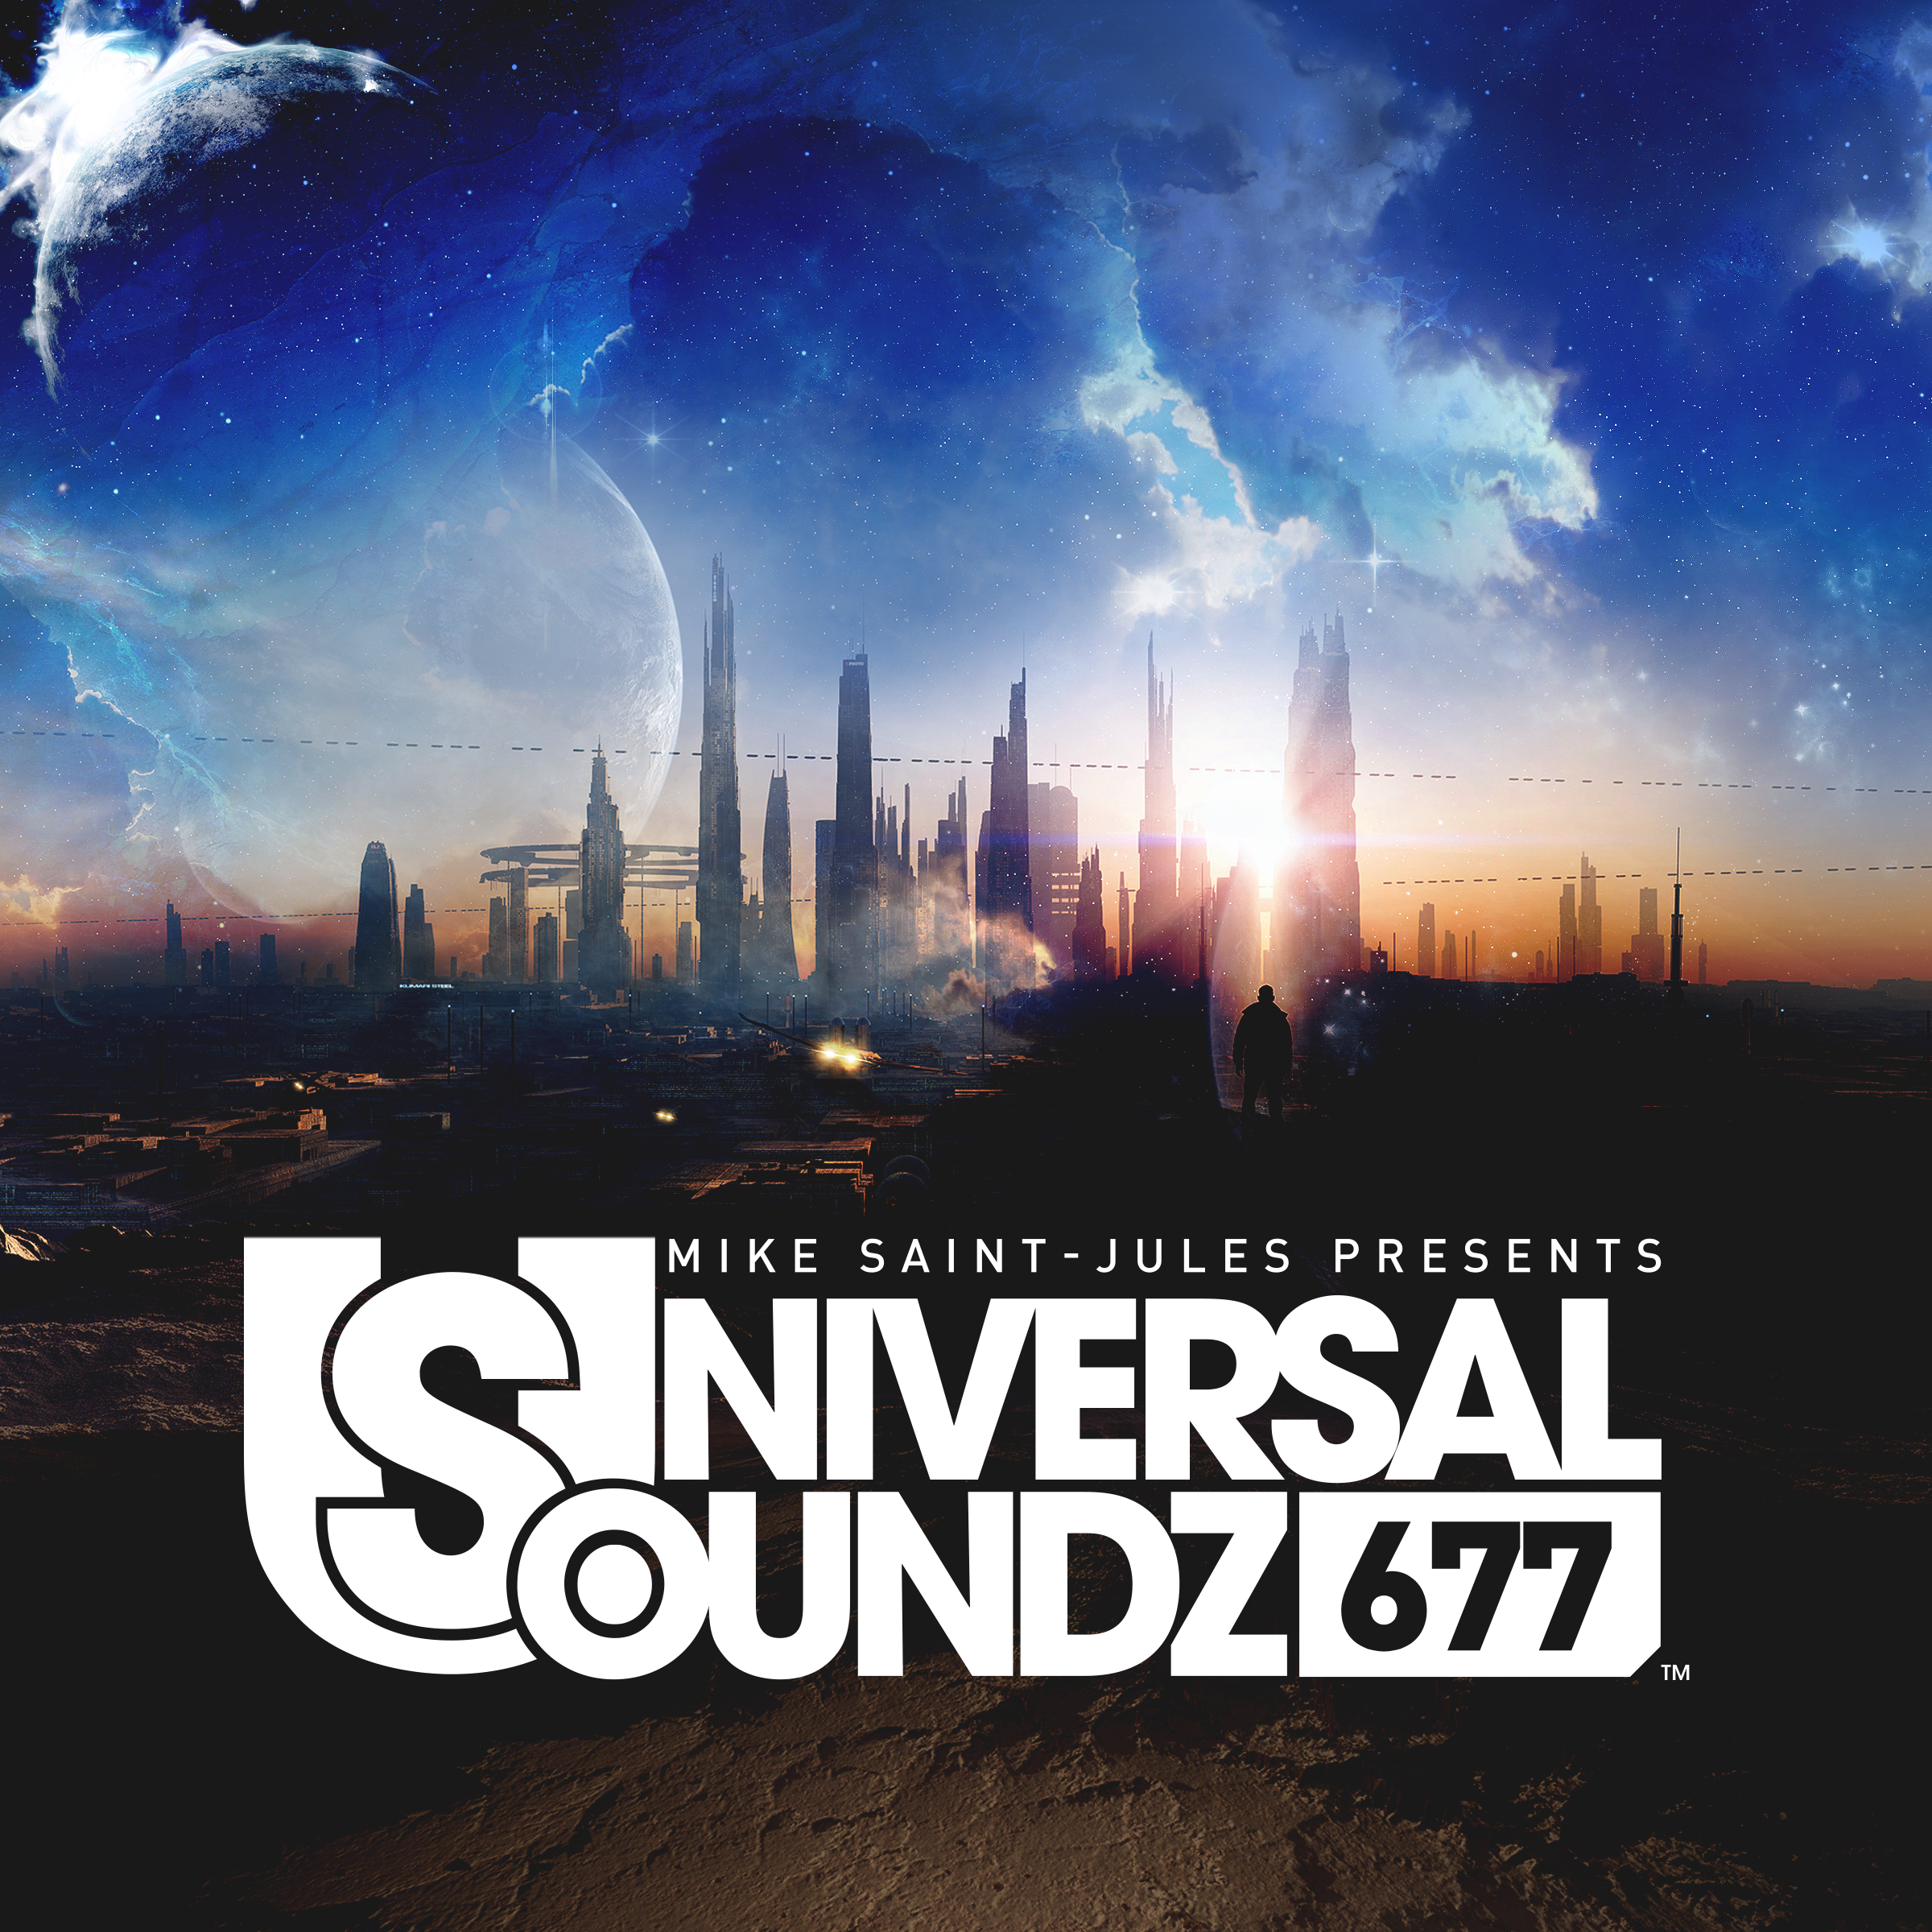 Mike Saint-Jules — Universal Soundz #677